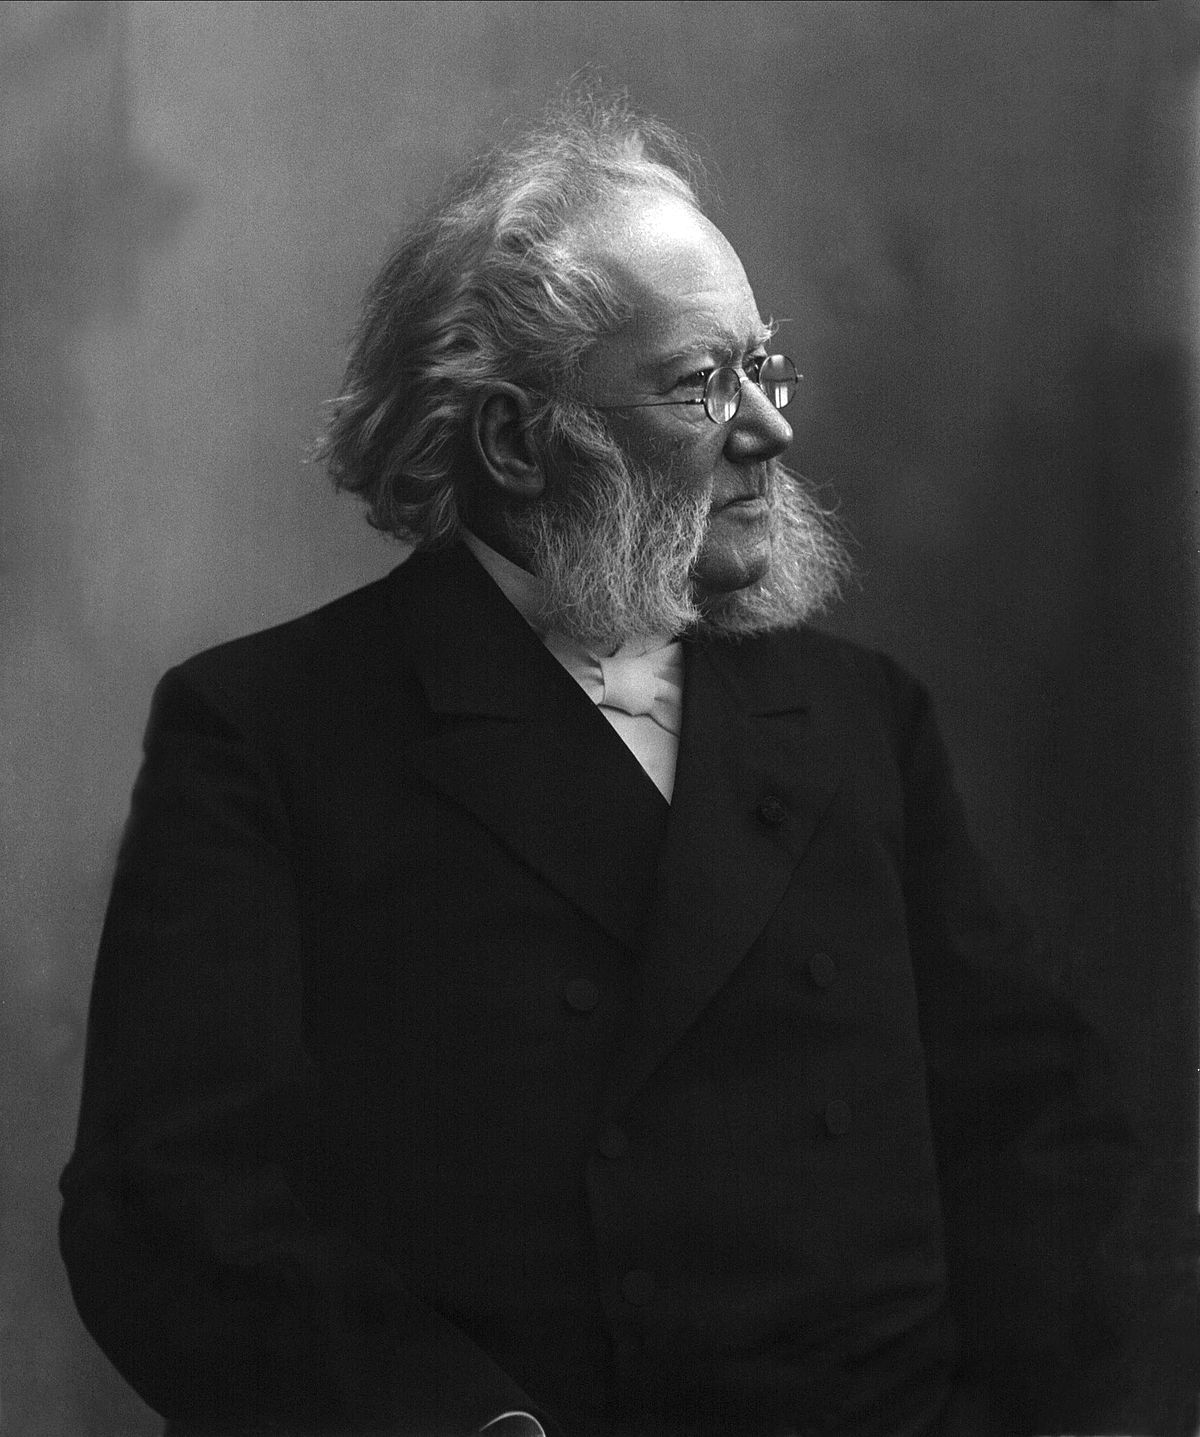 an analysis of the play ghost by henrik ibsen Ghosts henrik ibsen table of contents summary summary & analysis act 1, part 1 of 5 act 1, part 2 of 5 act 1, part 3 of 5 act 1, part 4 of 5.